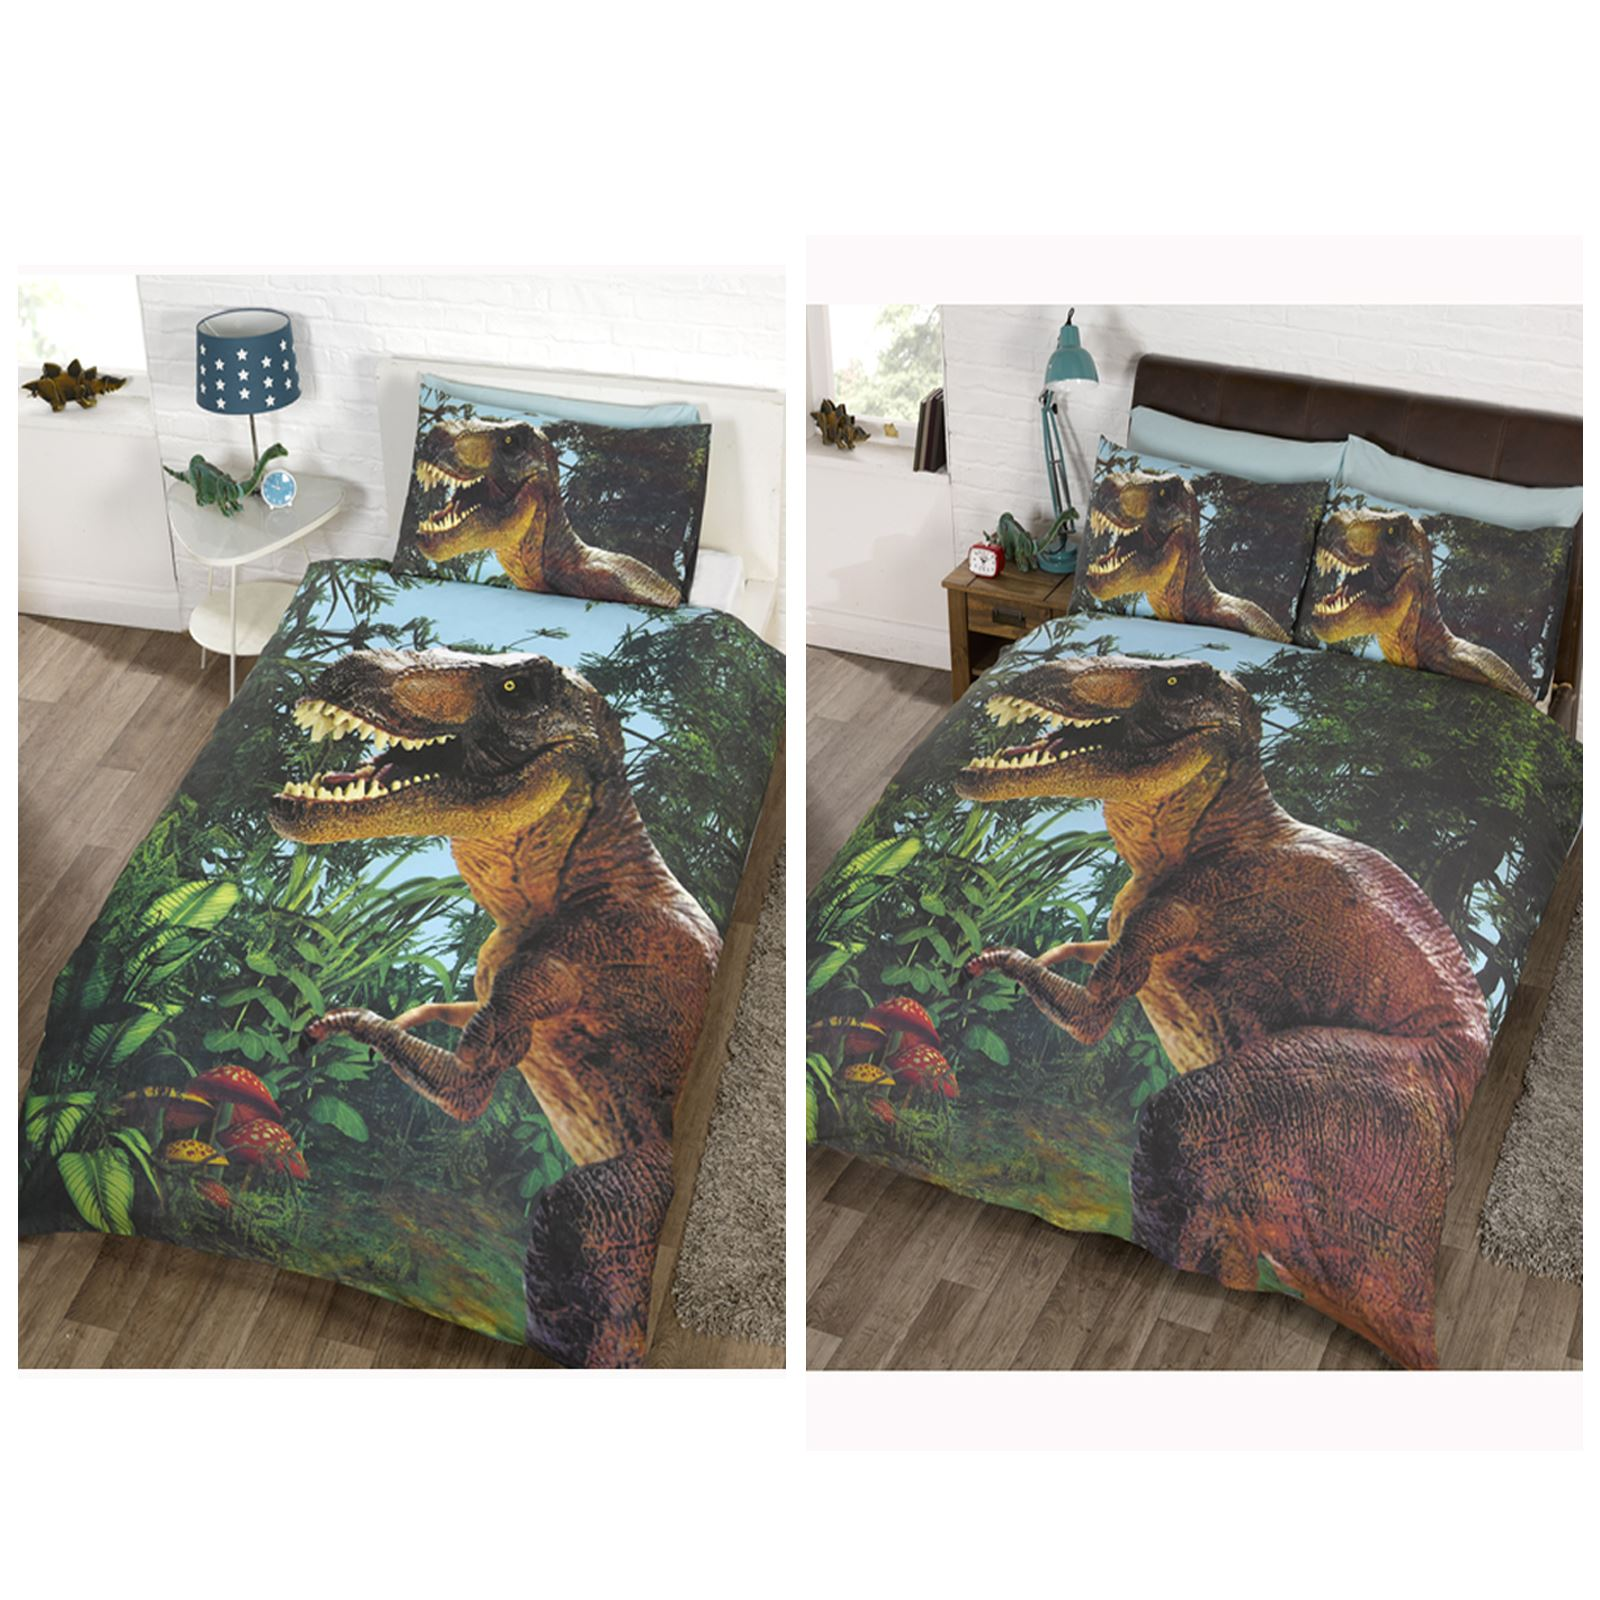 Jurassic t rex dinosaur duvet cover sets in single or for T rex bedroom decor